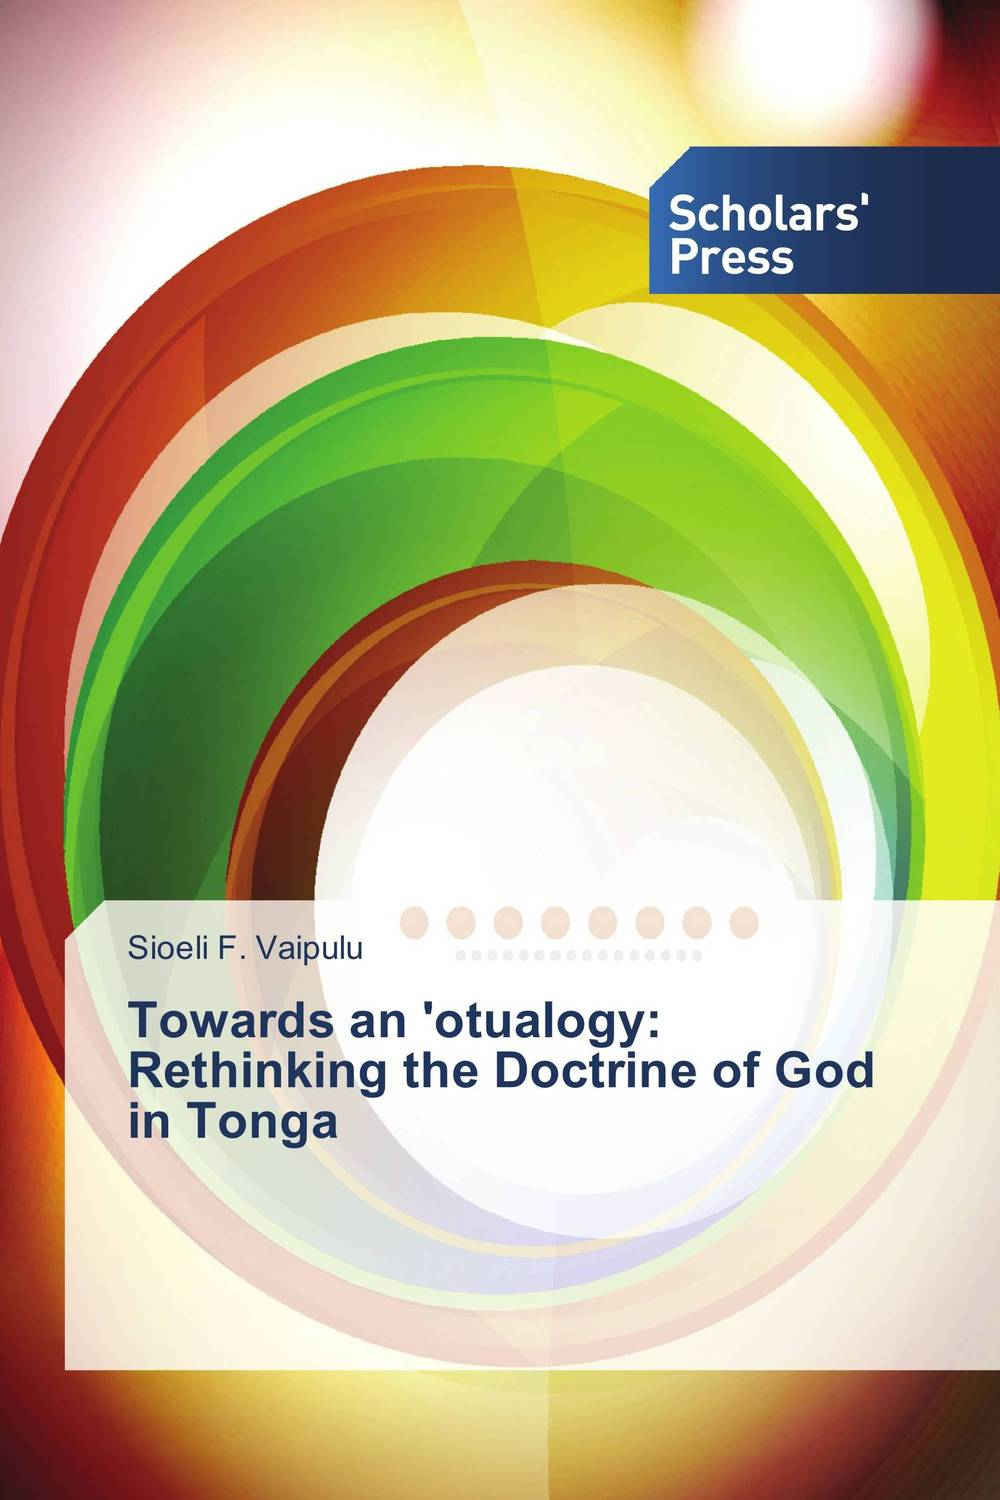 Towards an 'otualogy: Rethinking the Doctrine of God in Tonga